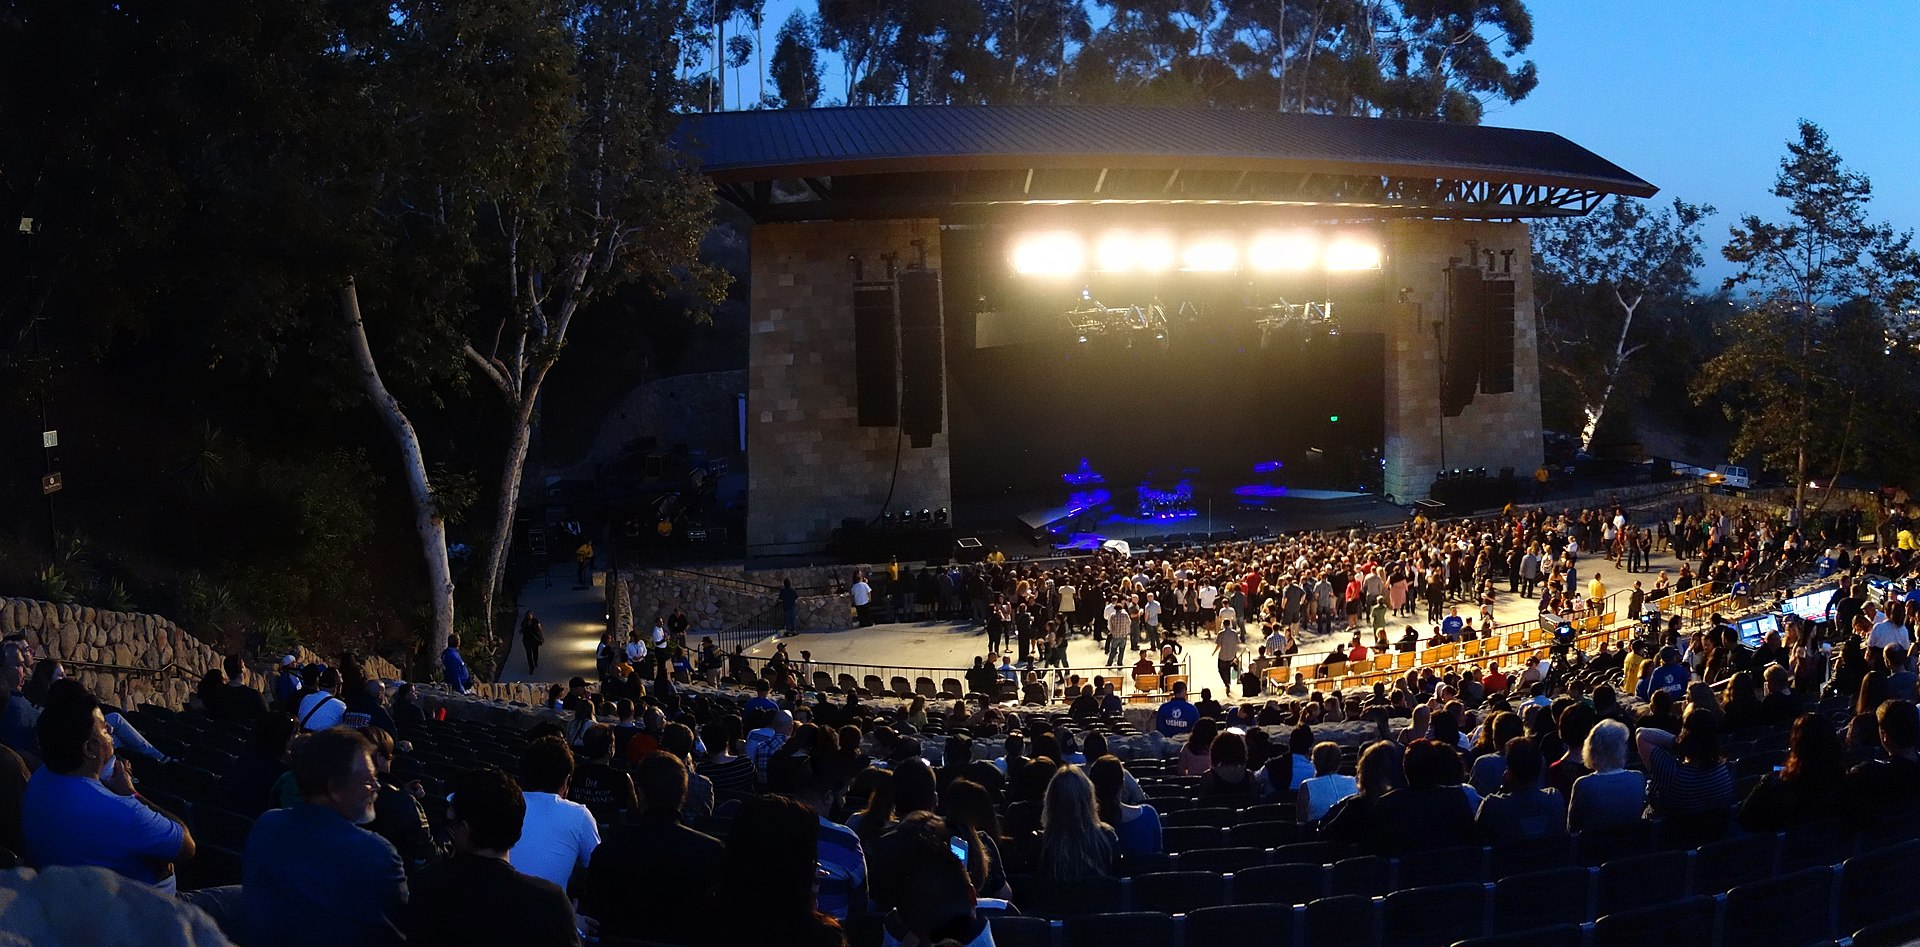 1920px-Santa_Barbara_Bowl_Depeche_Mode_%282013%29.jpg